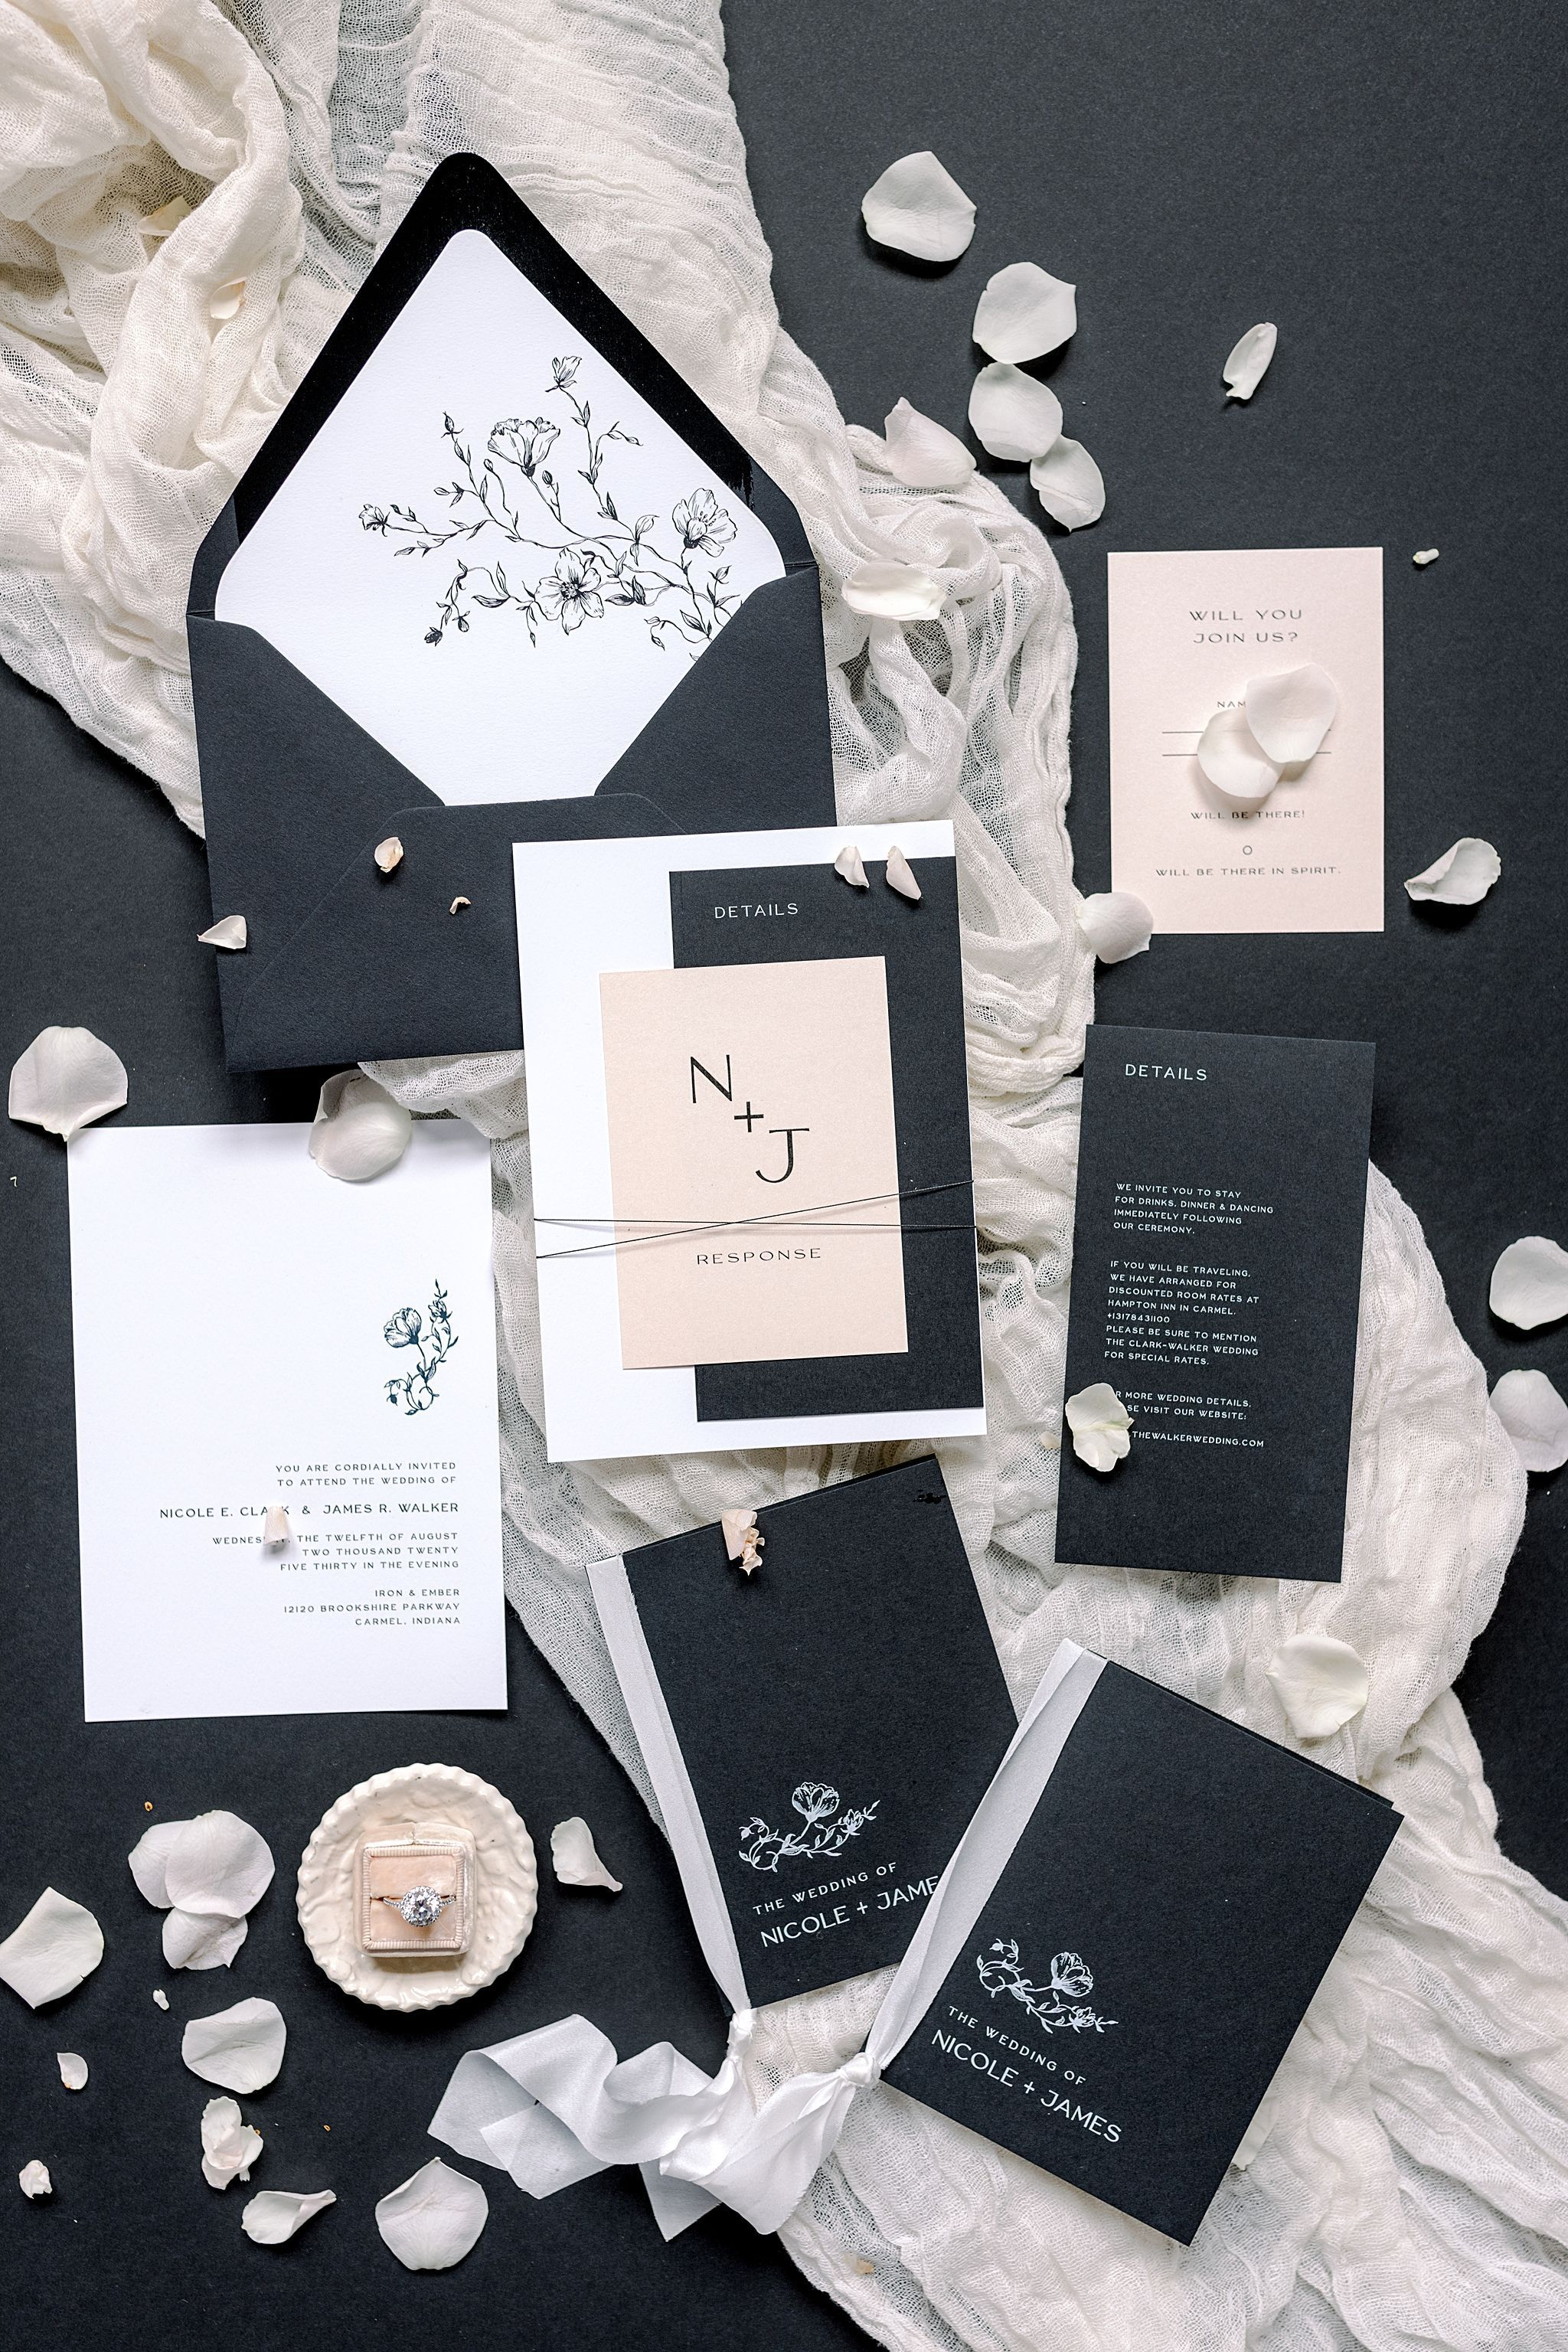 Pink And Black Wedding Invitation Ideas In 2020 Wedding Invitations With Pictures Black Wedding Invitations Modern Wedding Invitations